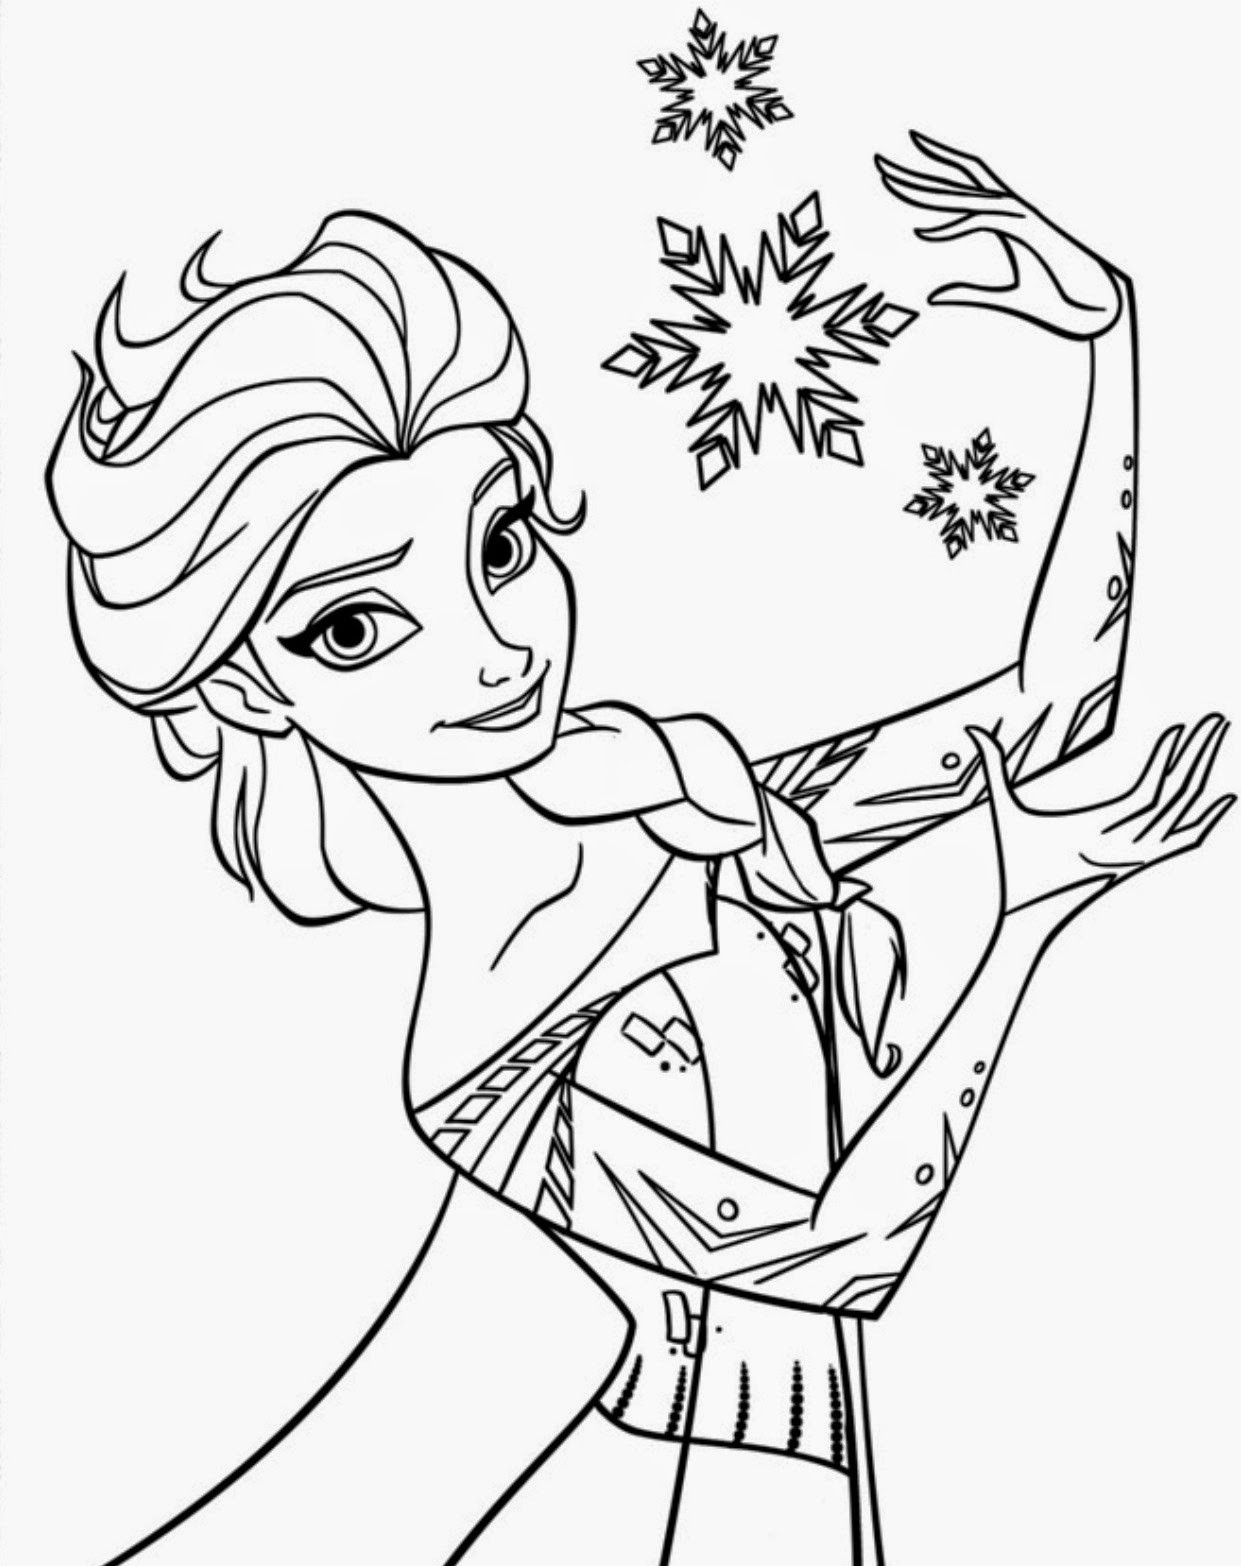 Best ideas about Disney Printable Coloring Pages . Save or Pin 15 Beautiful Disney Frozen Coloring Pages Free Instant Now.